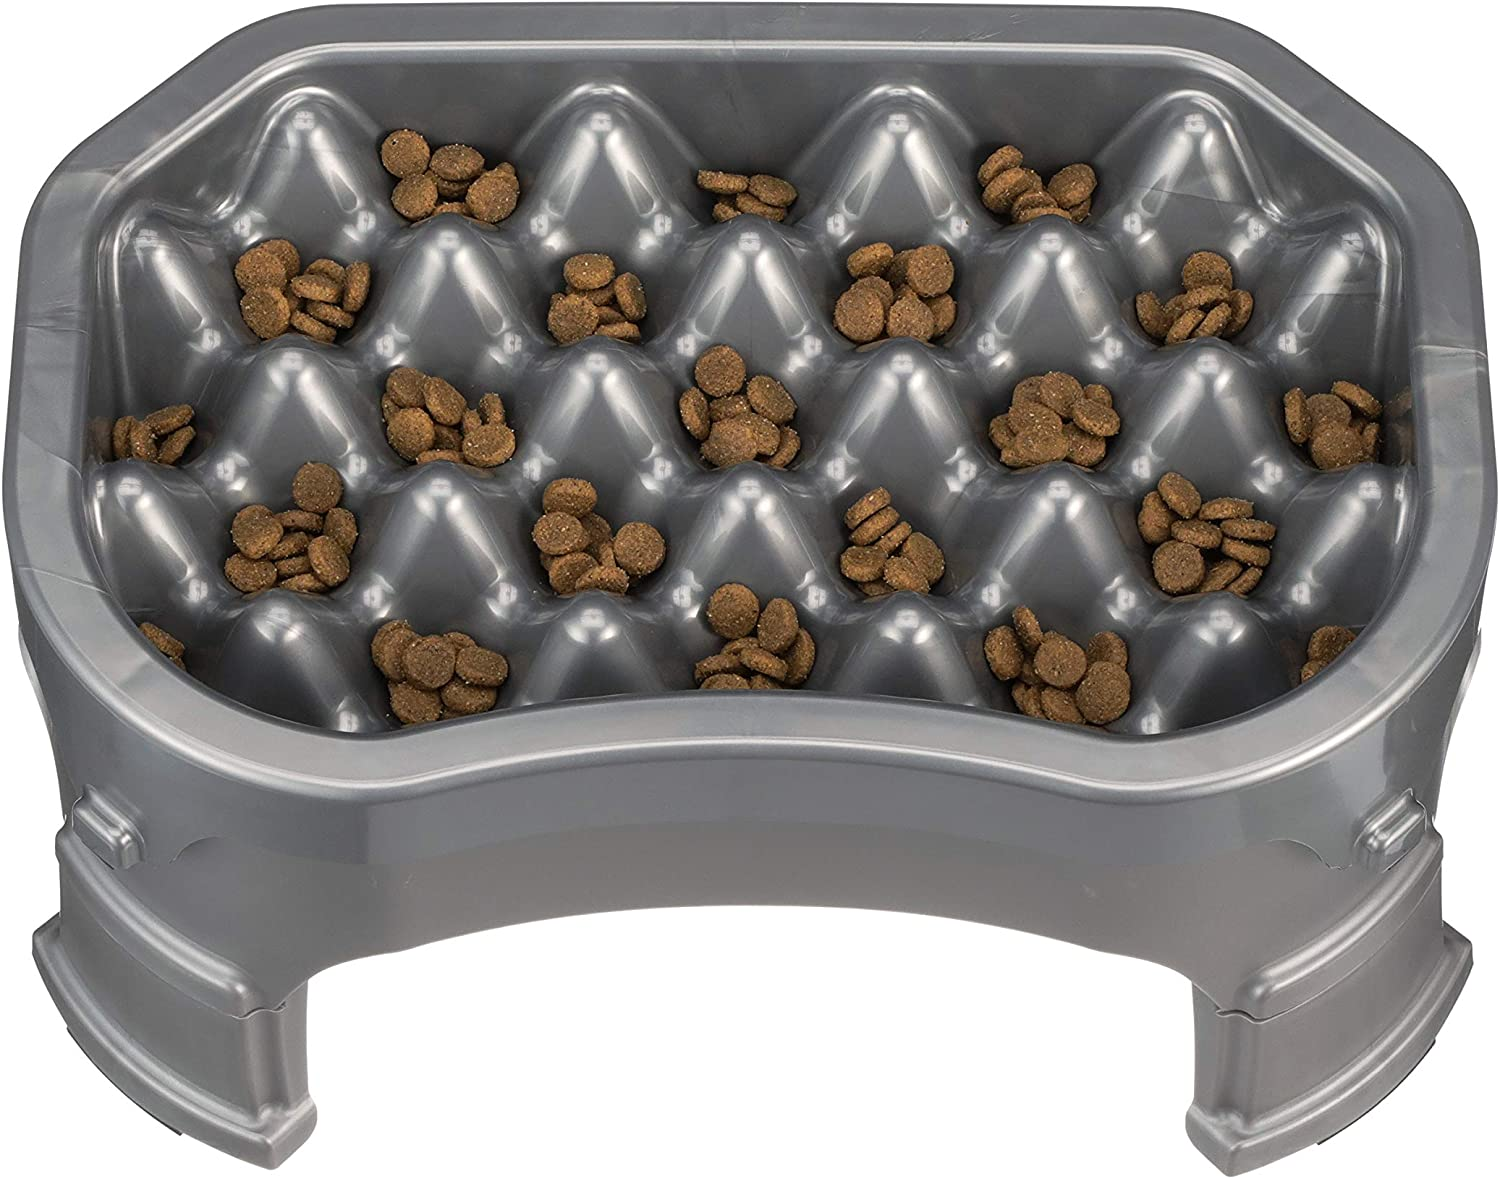 NEATER PET BRANDS  Neater Slow Feeder & Accessories  Gentle Slow Feeding Bowl for Dogs  Gunmetal color  Non Skid Feet (Neater Slow Feeder + Big Bowl Base + Legs, Gunmetal)